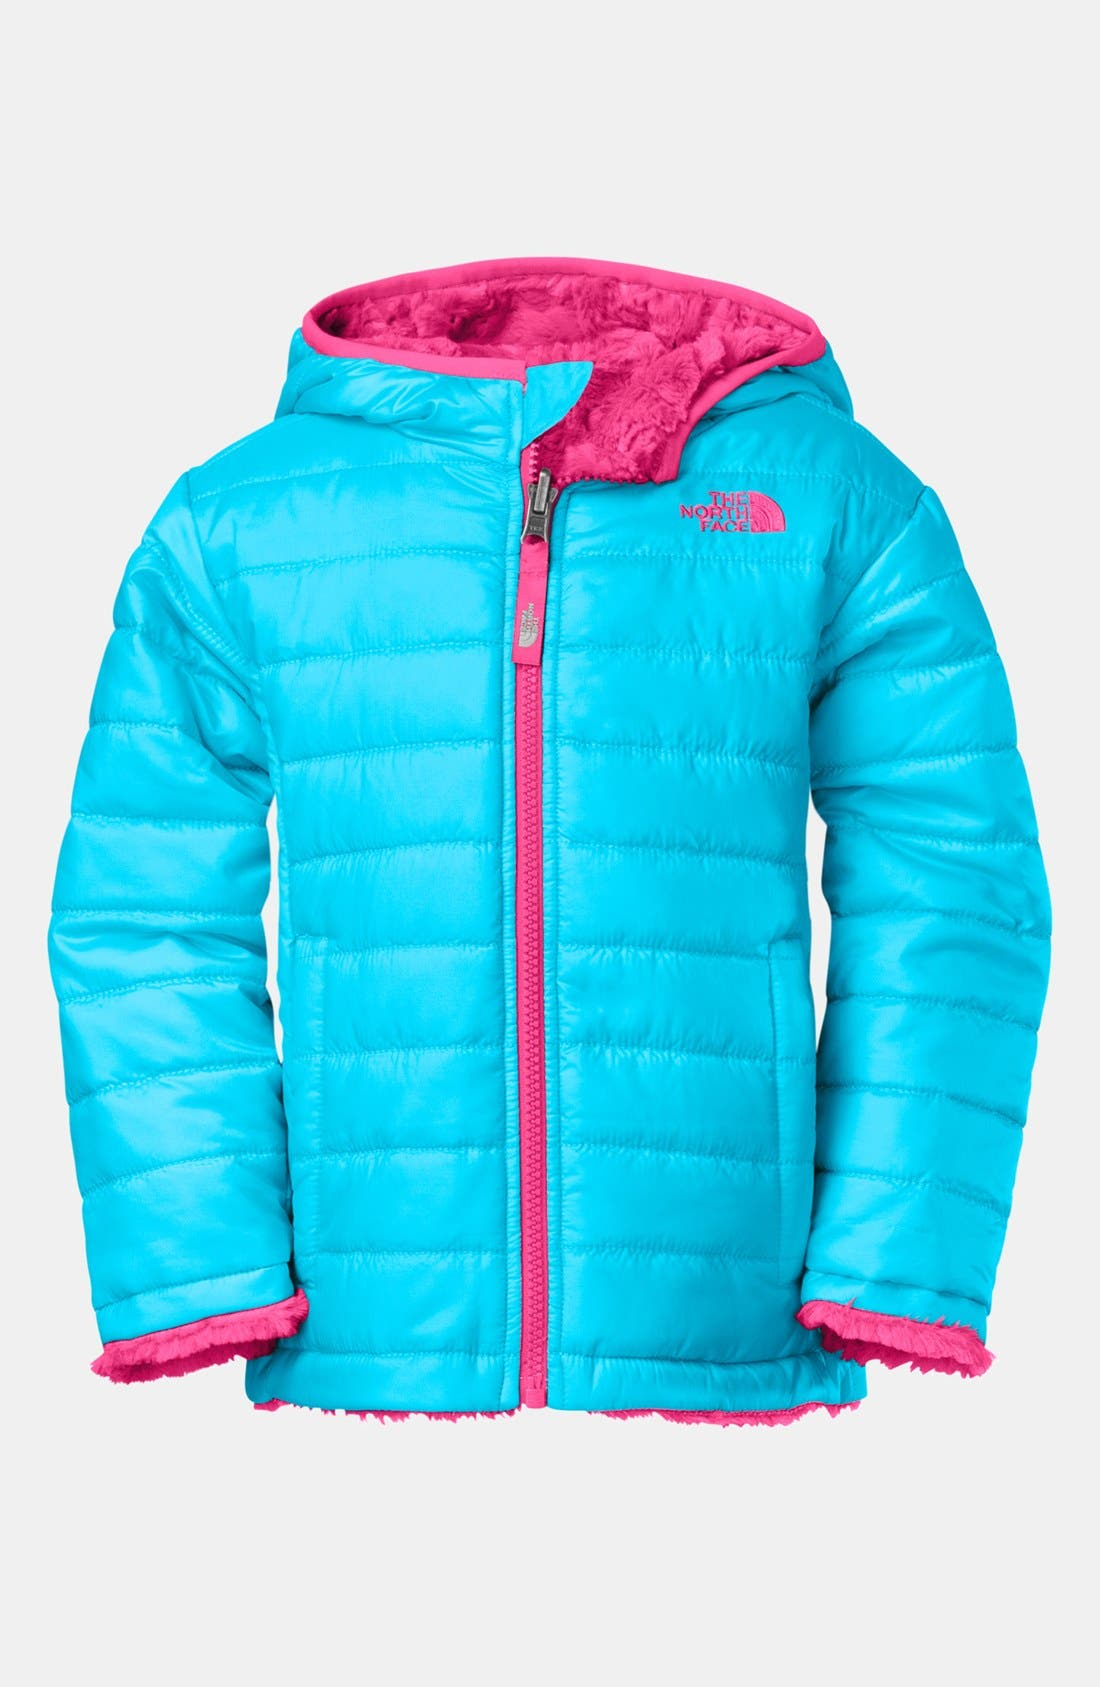 Alternate Image 1 Selected - The North Face 'Mossbud Swirl' Reversible Water Repellent Jacket(Toddler Girls)